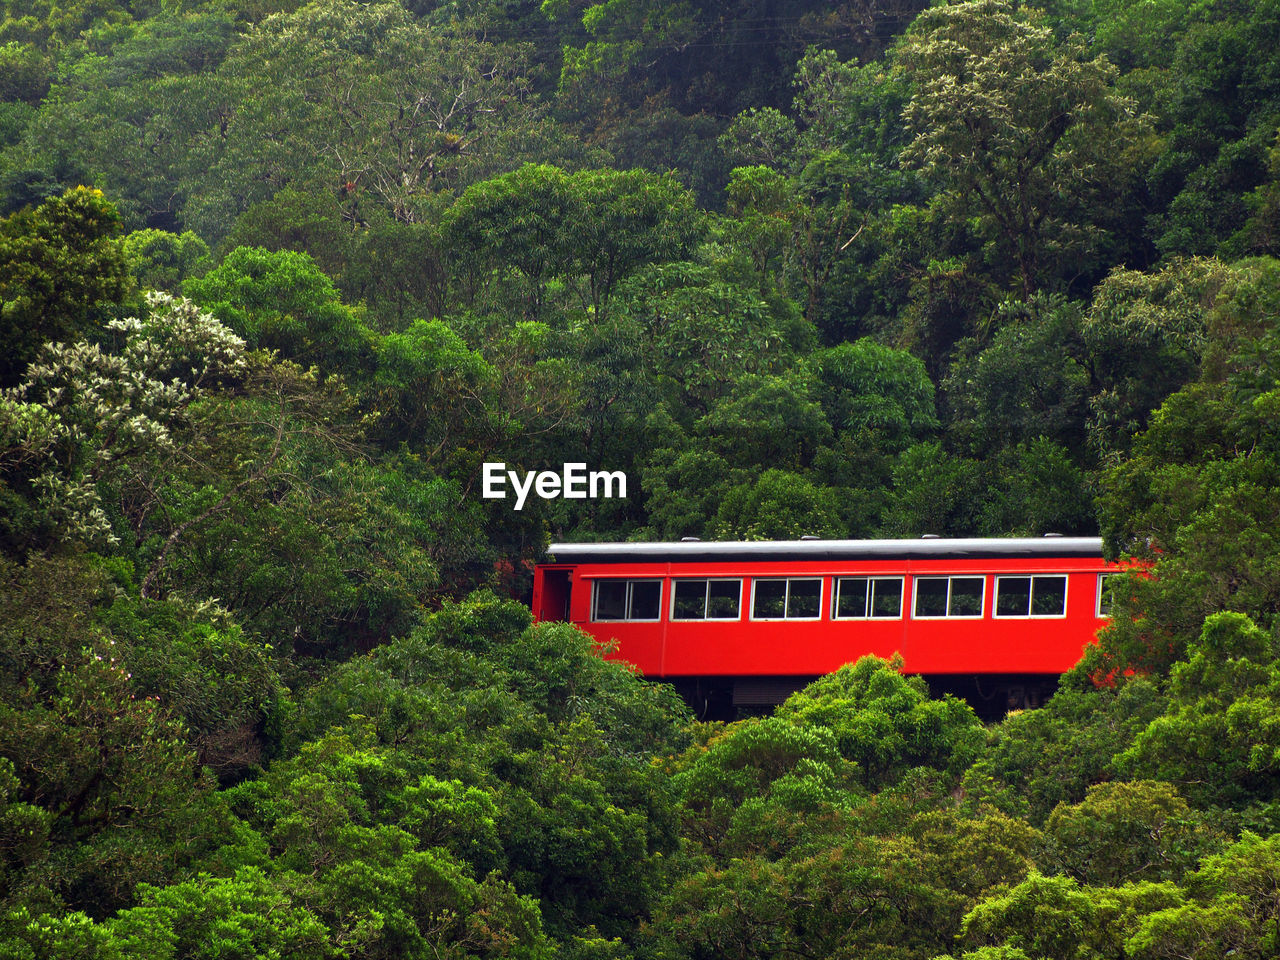 VIEW OF TRAIN ON FOREST